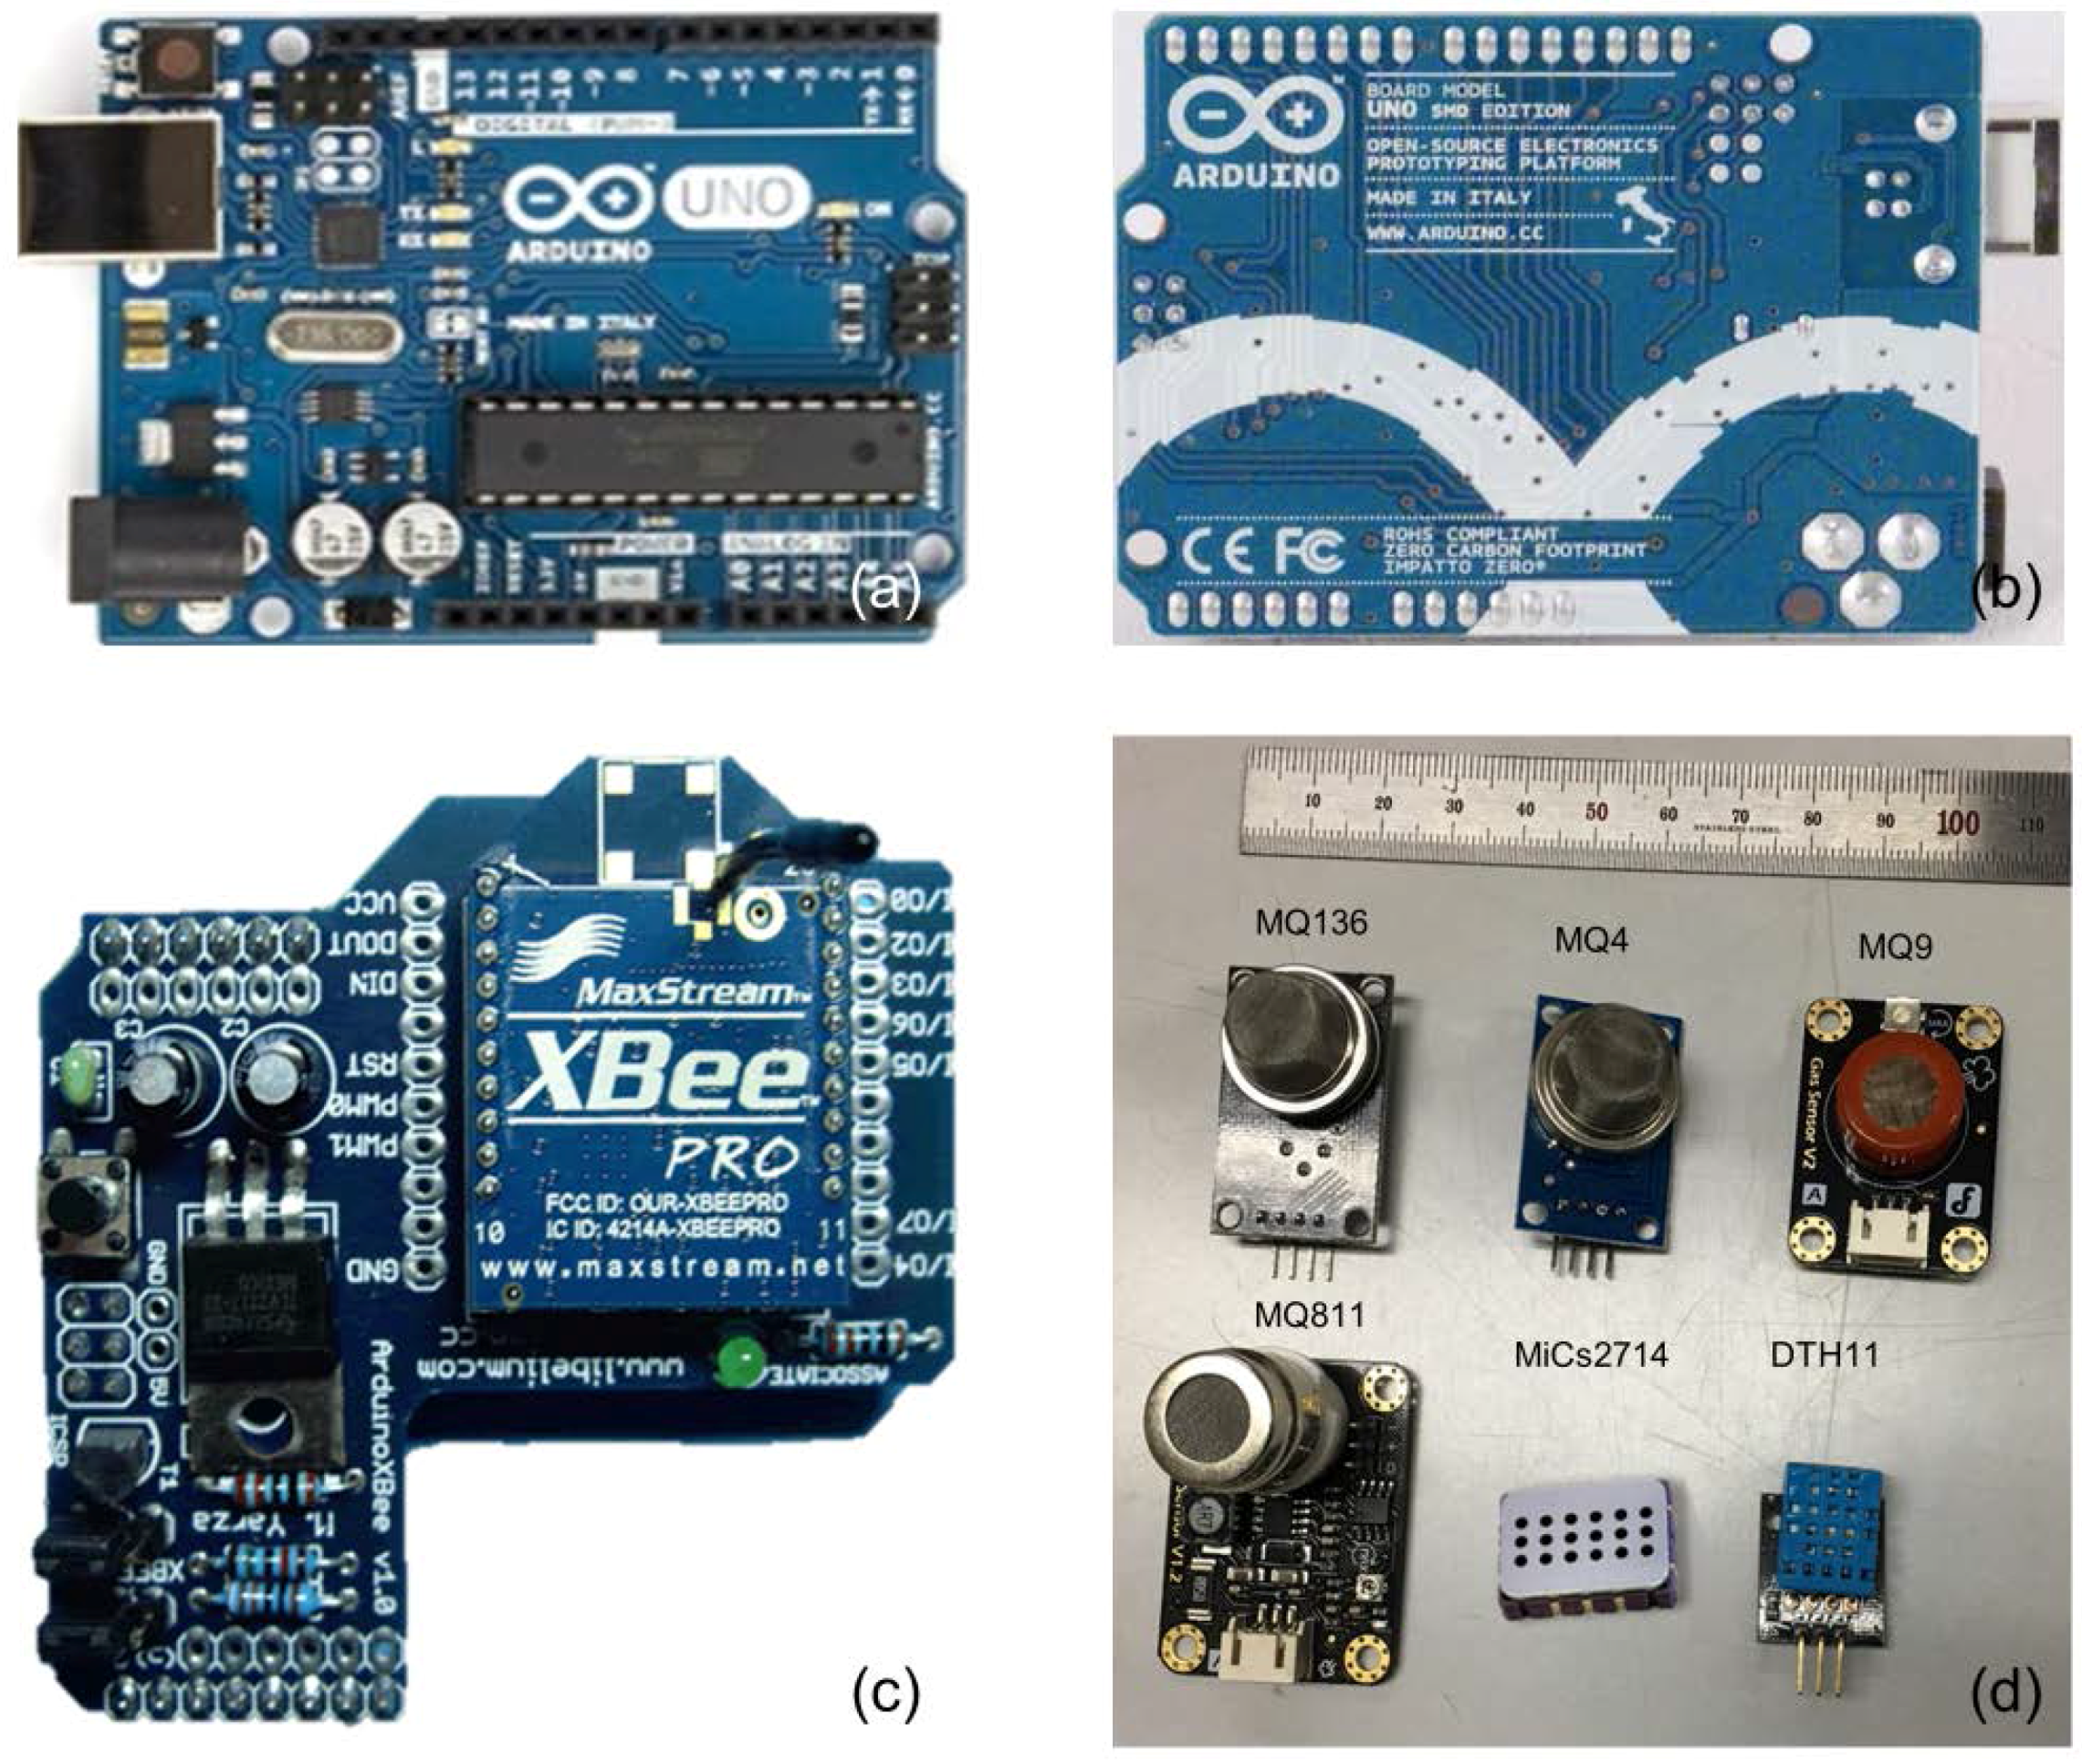 Sensors | Free Full-Text | An Internet of Things System for